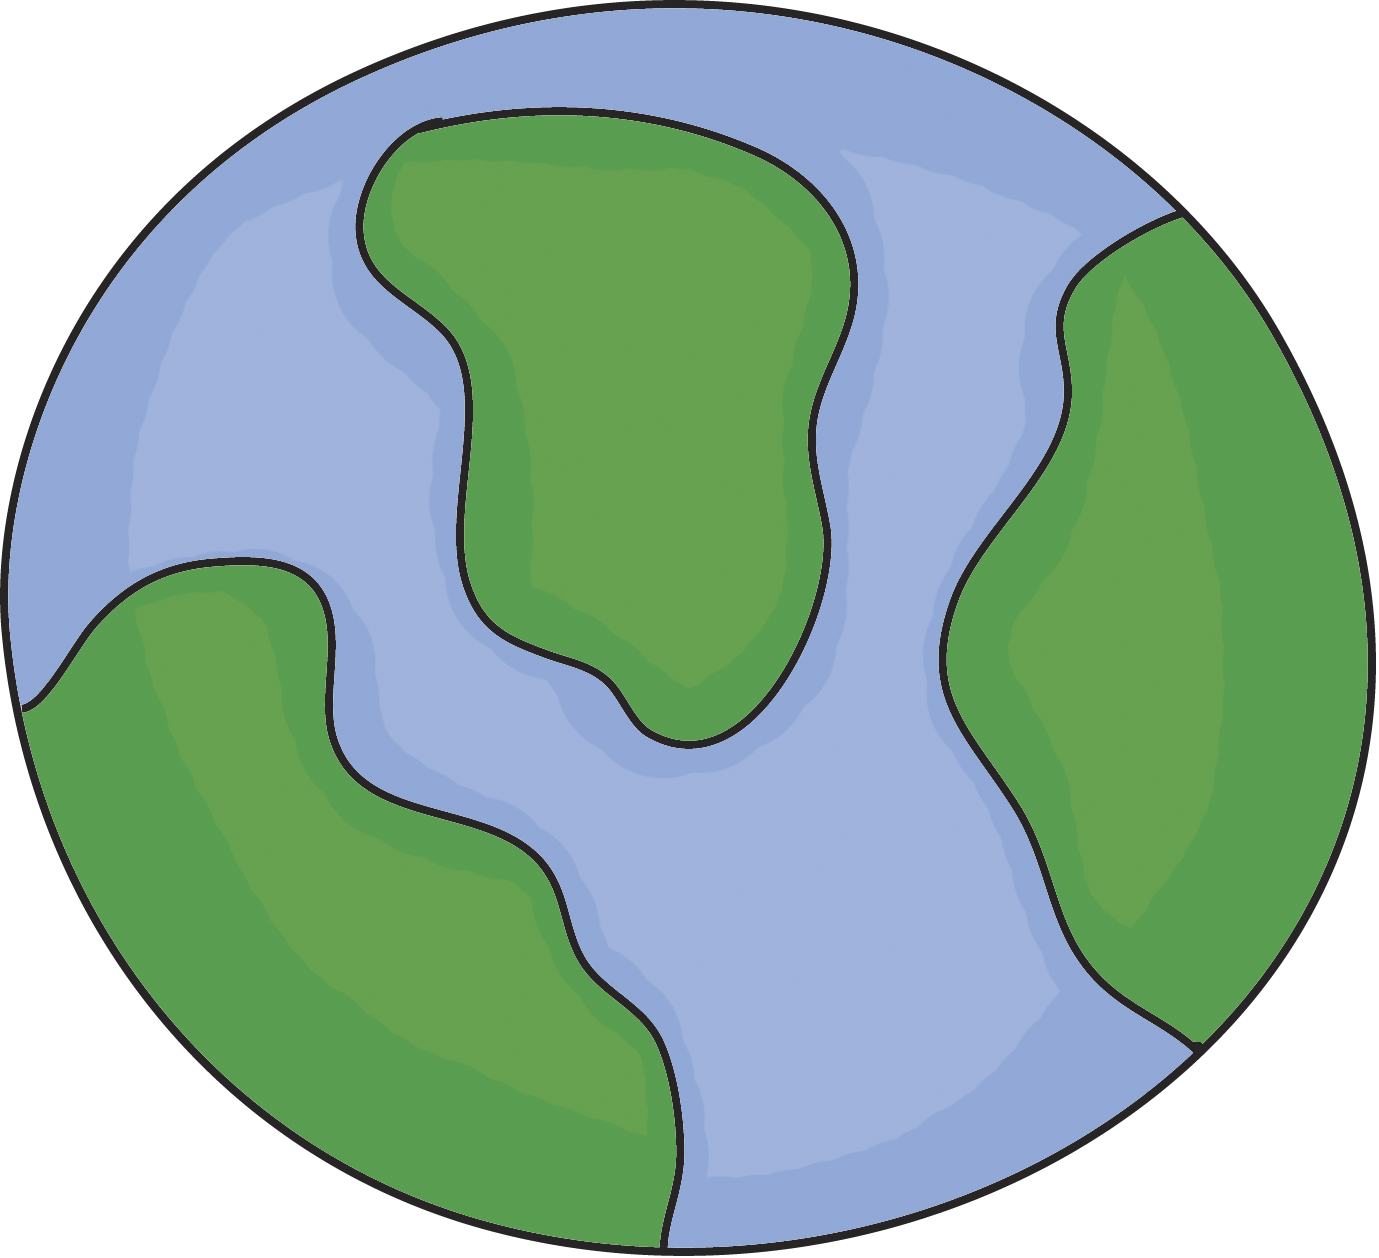 Planet Earth Image For Drawing - ClipArt Best